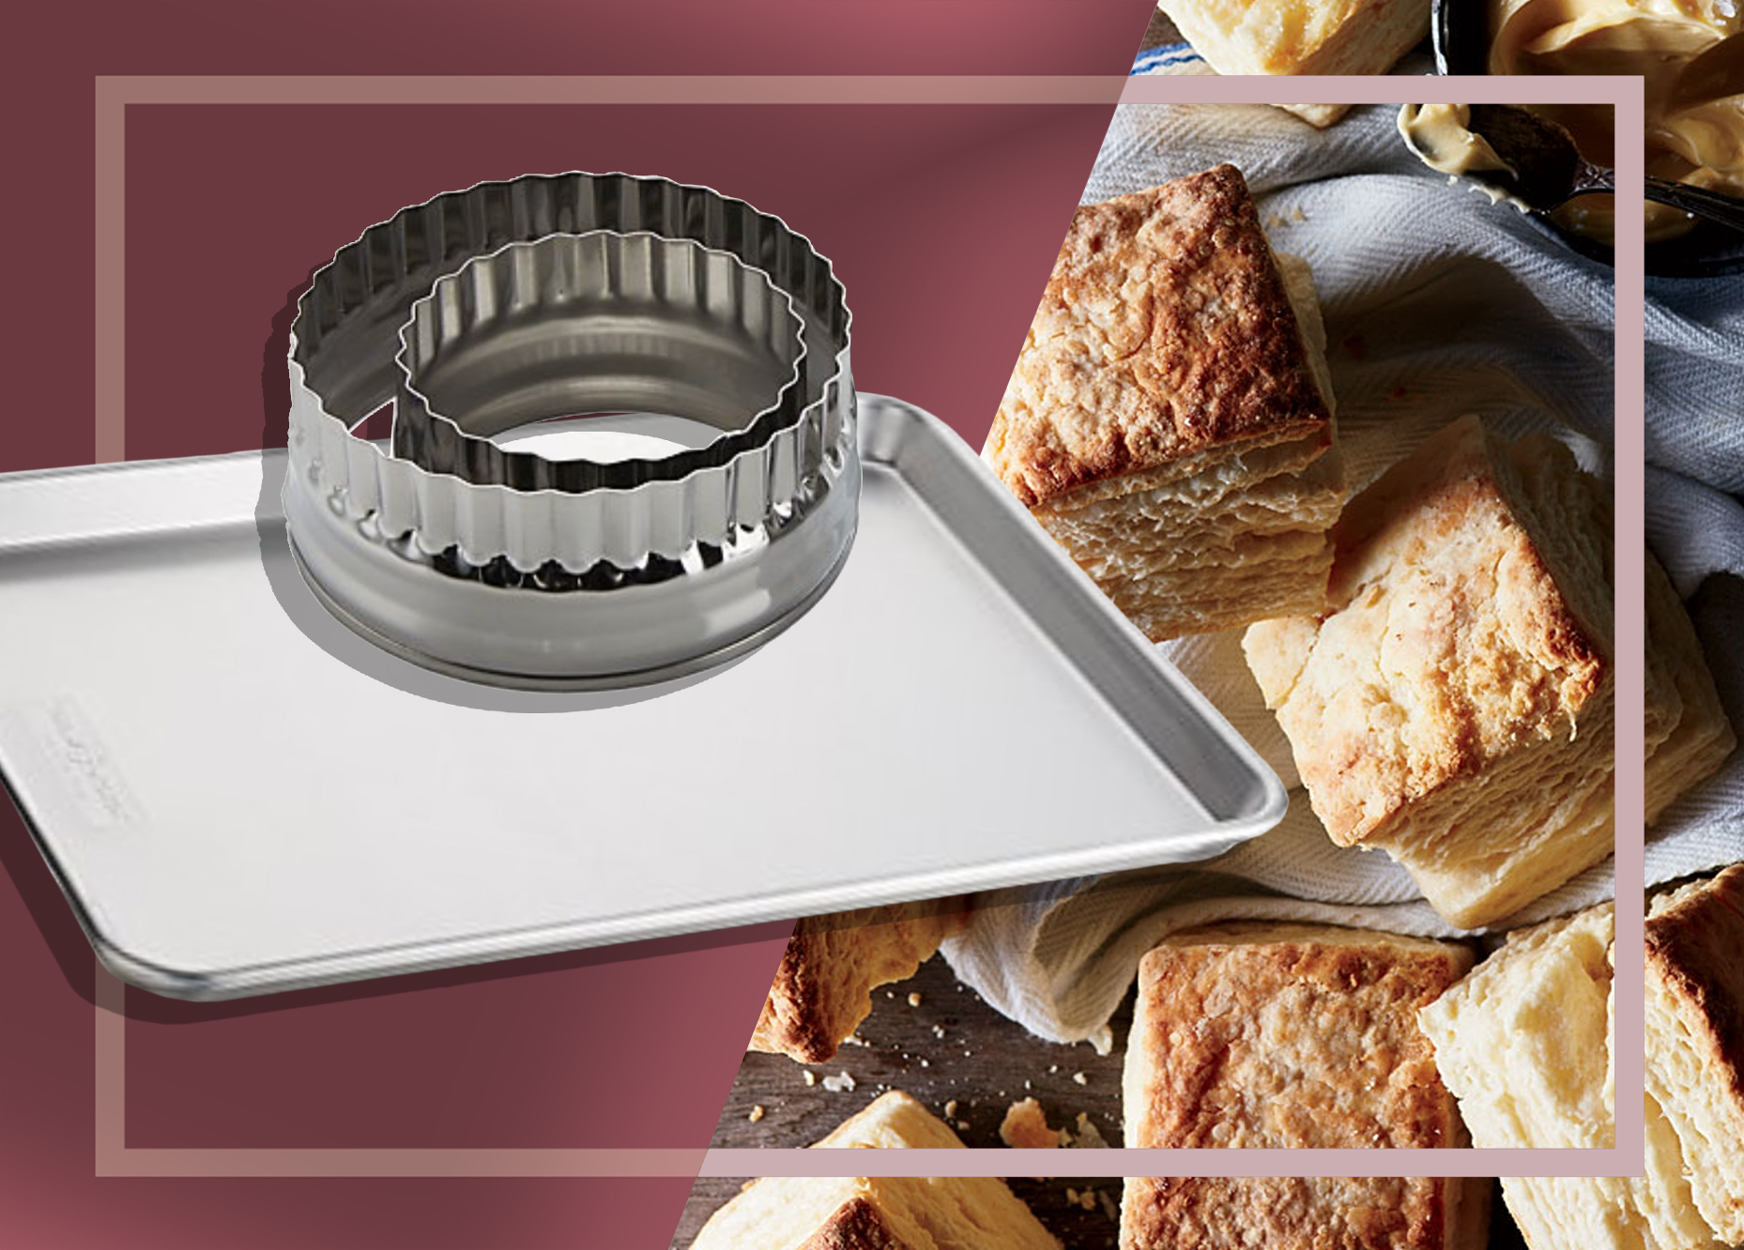 Crate and Barrel Sheet Pans and Biscuit Cutters